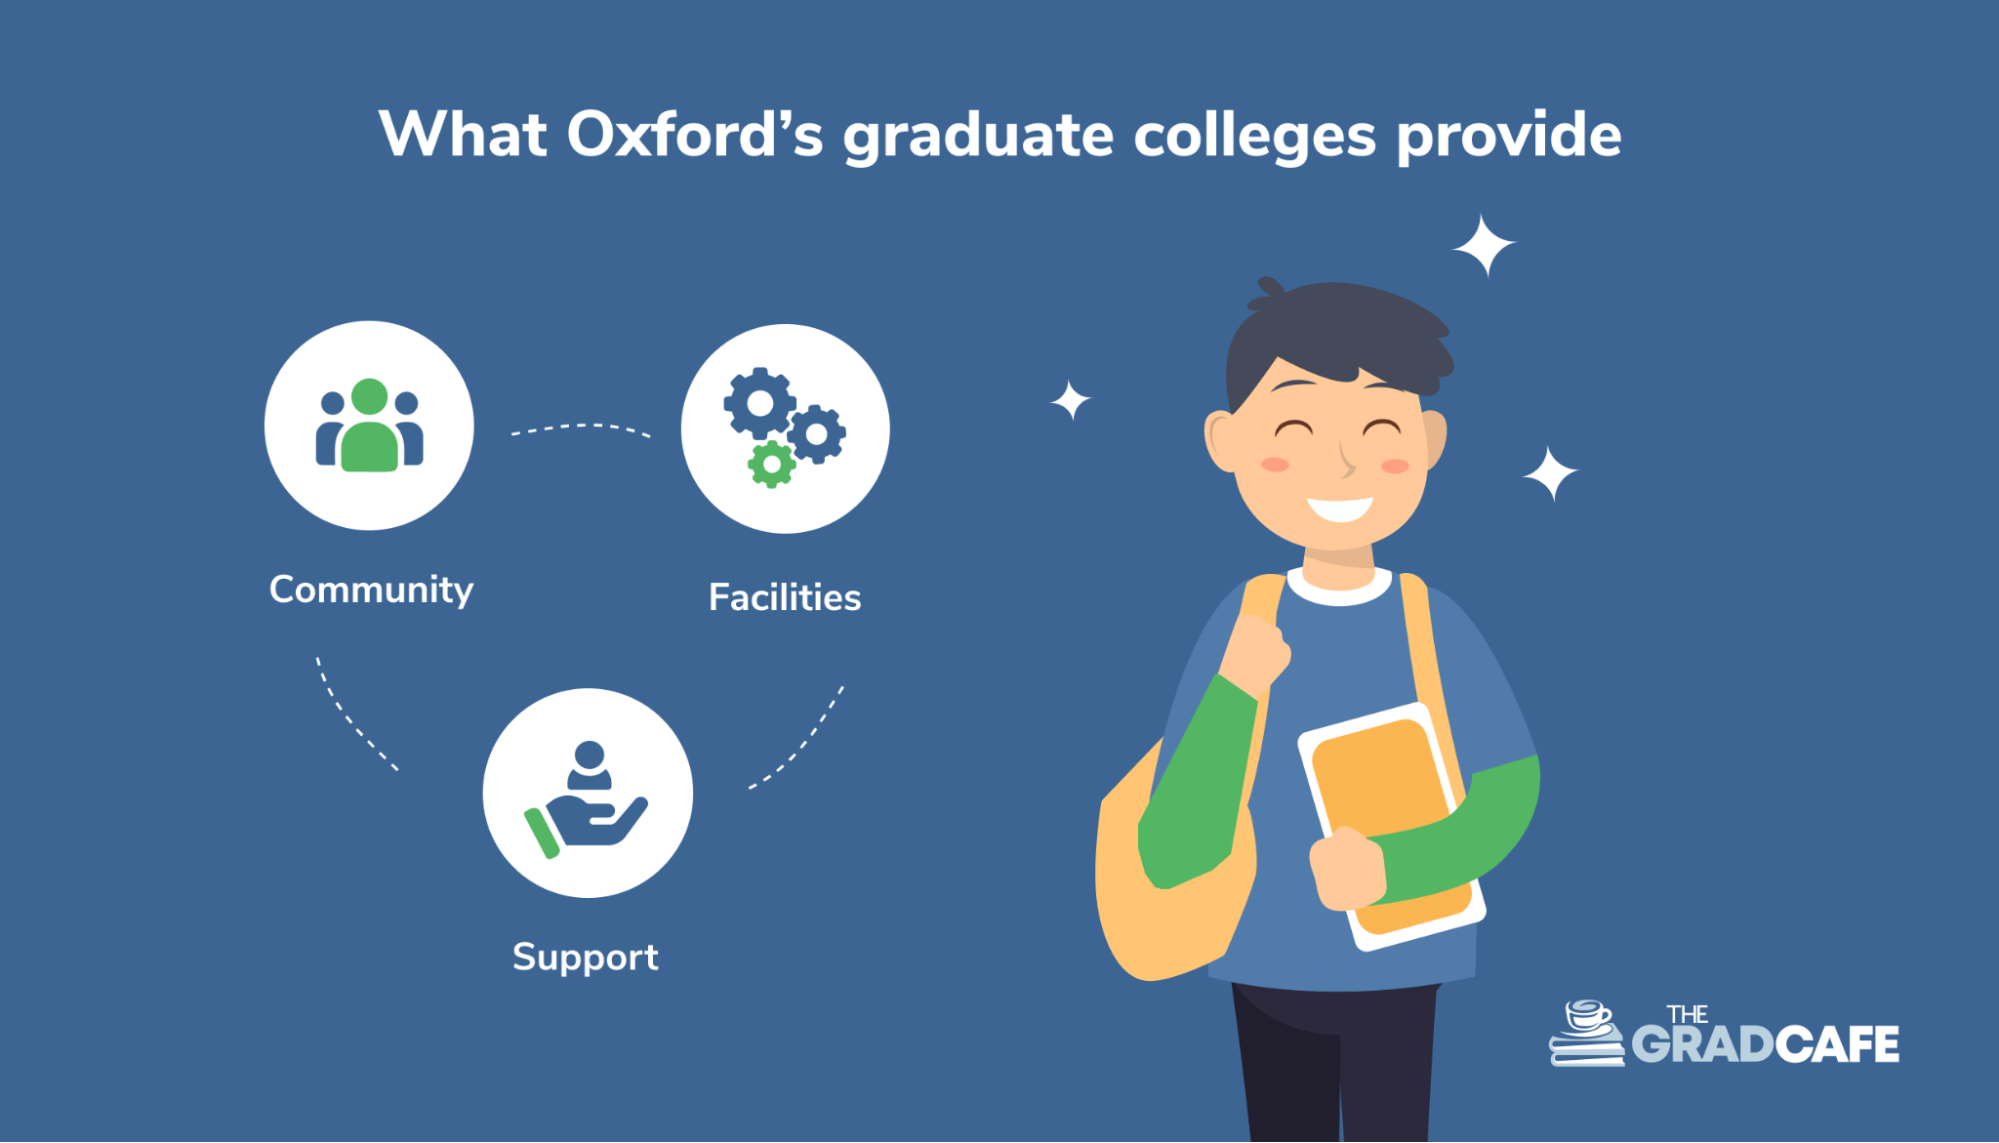 what Oxford's graduate colleges provide